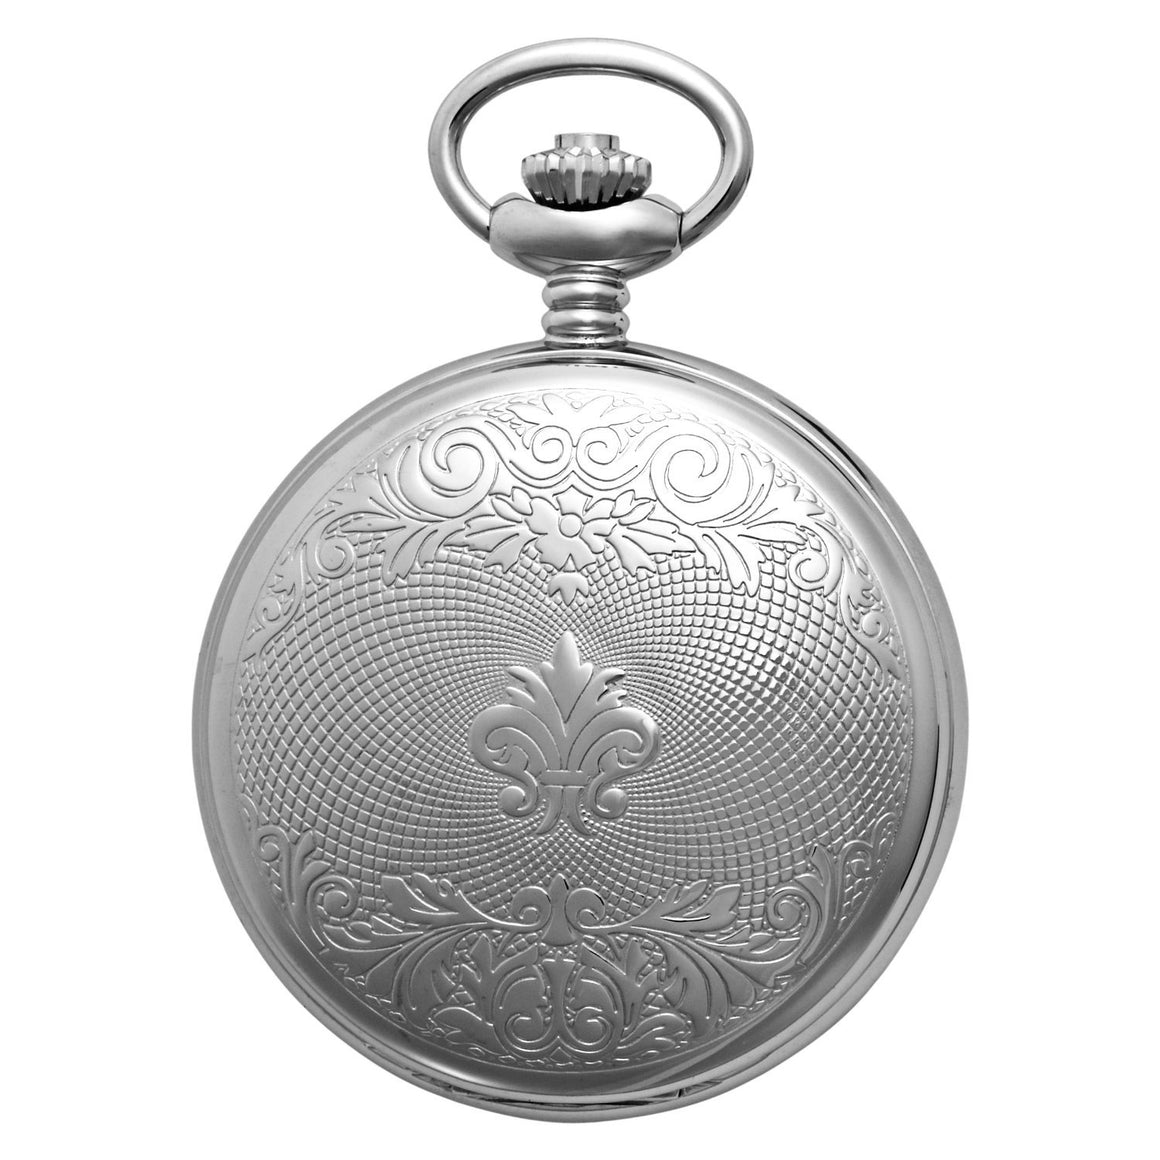 Gotham Men's Silver-Tone Mechanical Pocket Watch with Desktop Stand # GWC14040SBG-ST